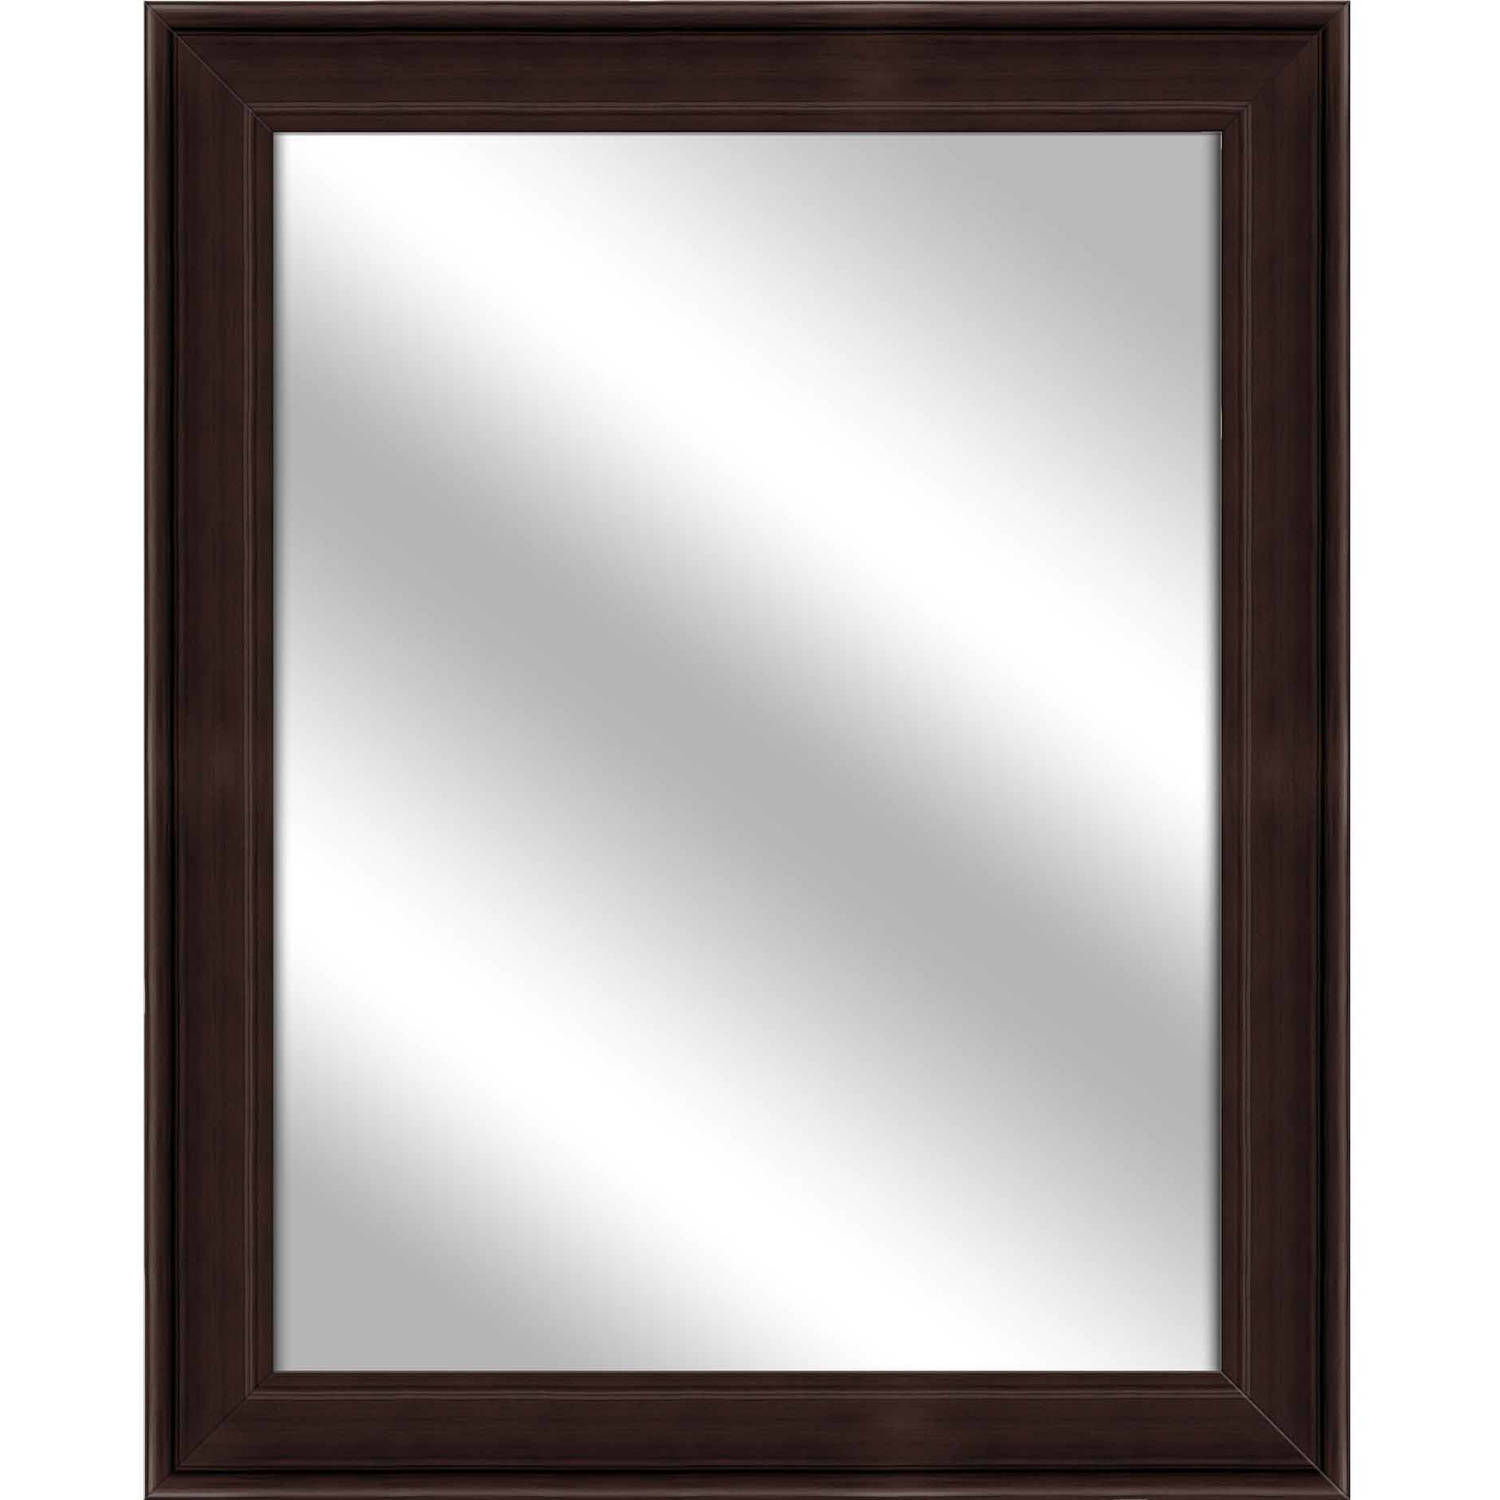 Vanity Mirror, Brown, 26.75x32.75 by PTM Images